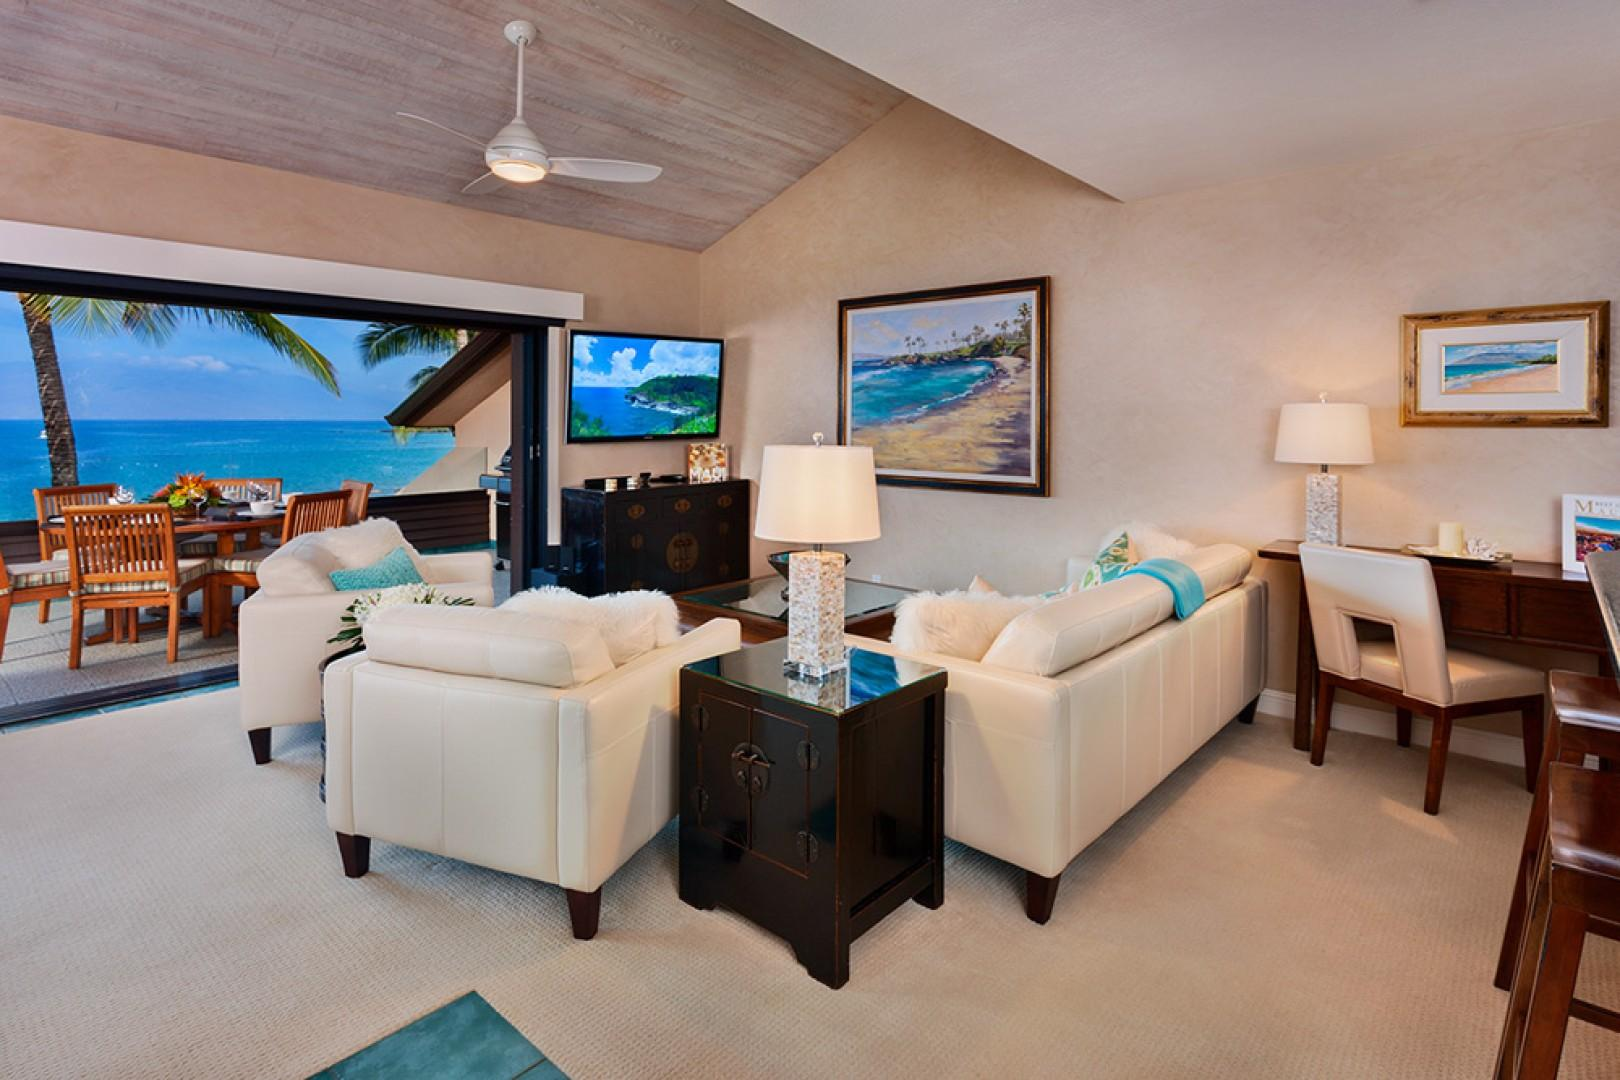 Sunny Surf E301 - Direct Oceanfront and Panoramic Beachfront View Great Room with Vaulted Ceilings and State of Art Entertainment System